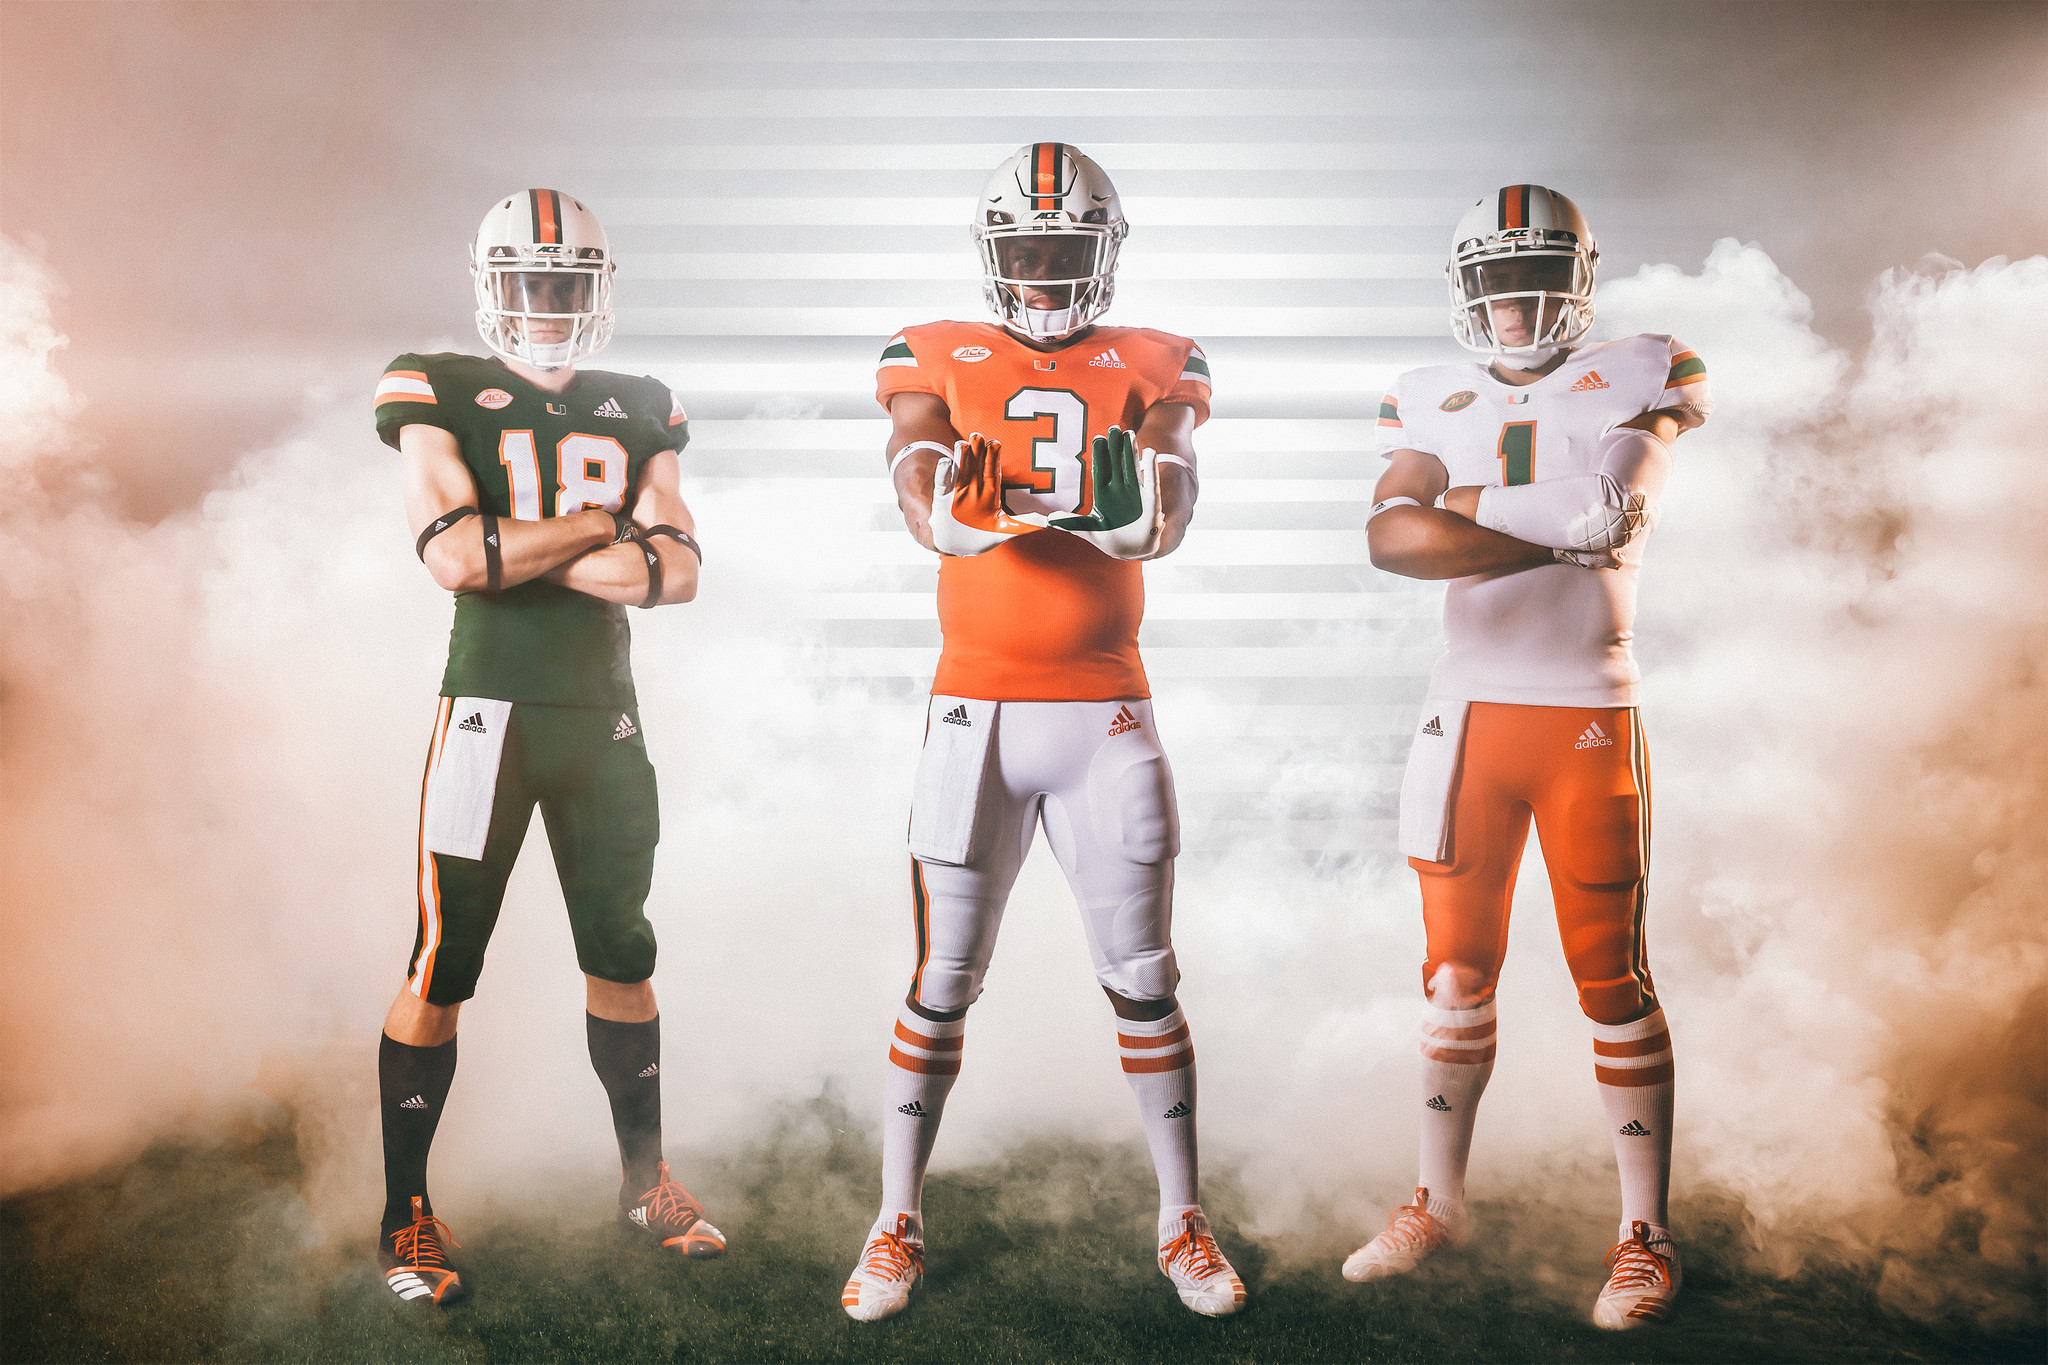 wholesale dealer 56494 7f233 Adidas, Miami reveal modified Hurricanes jerseys ahead of ...